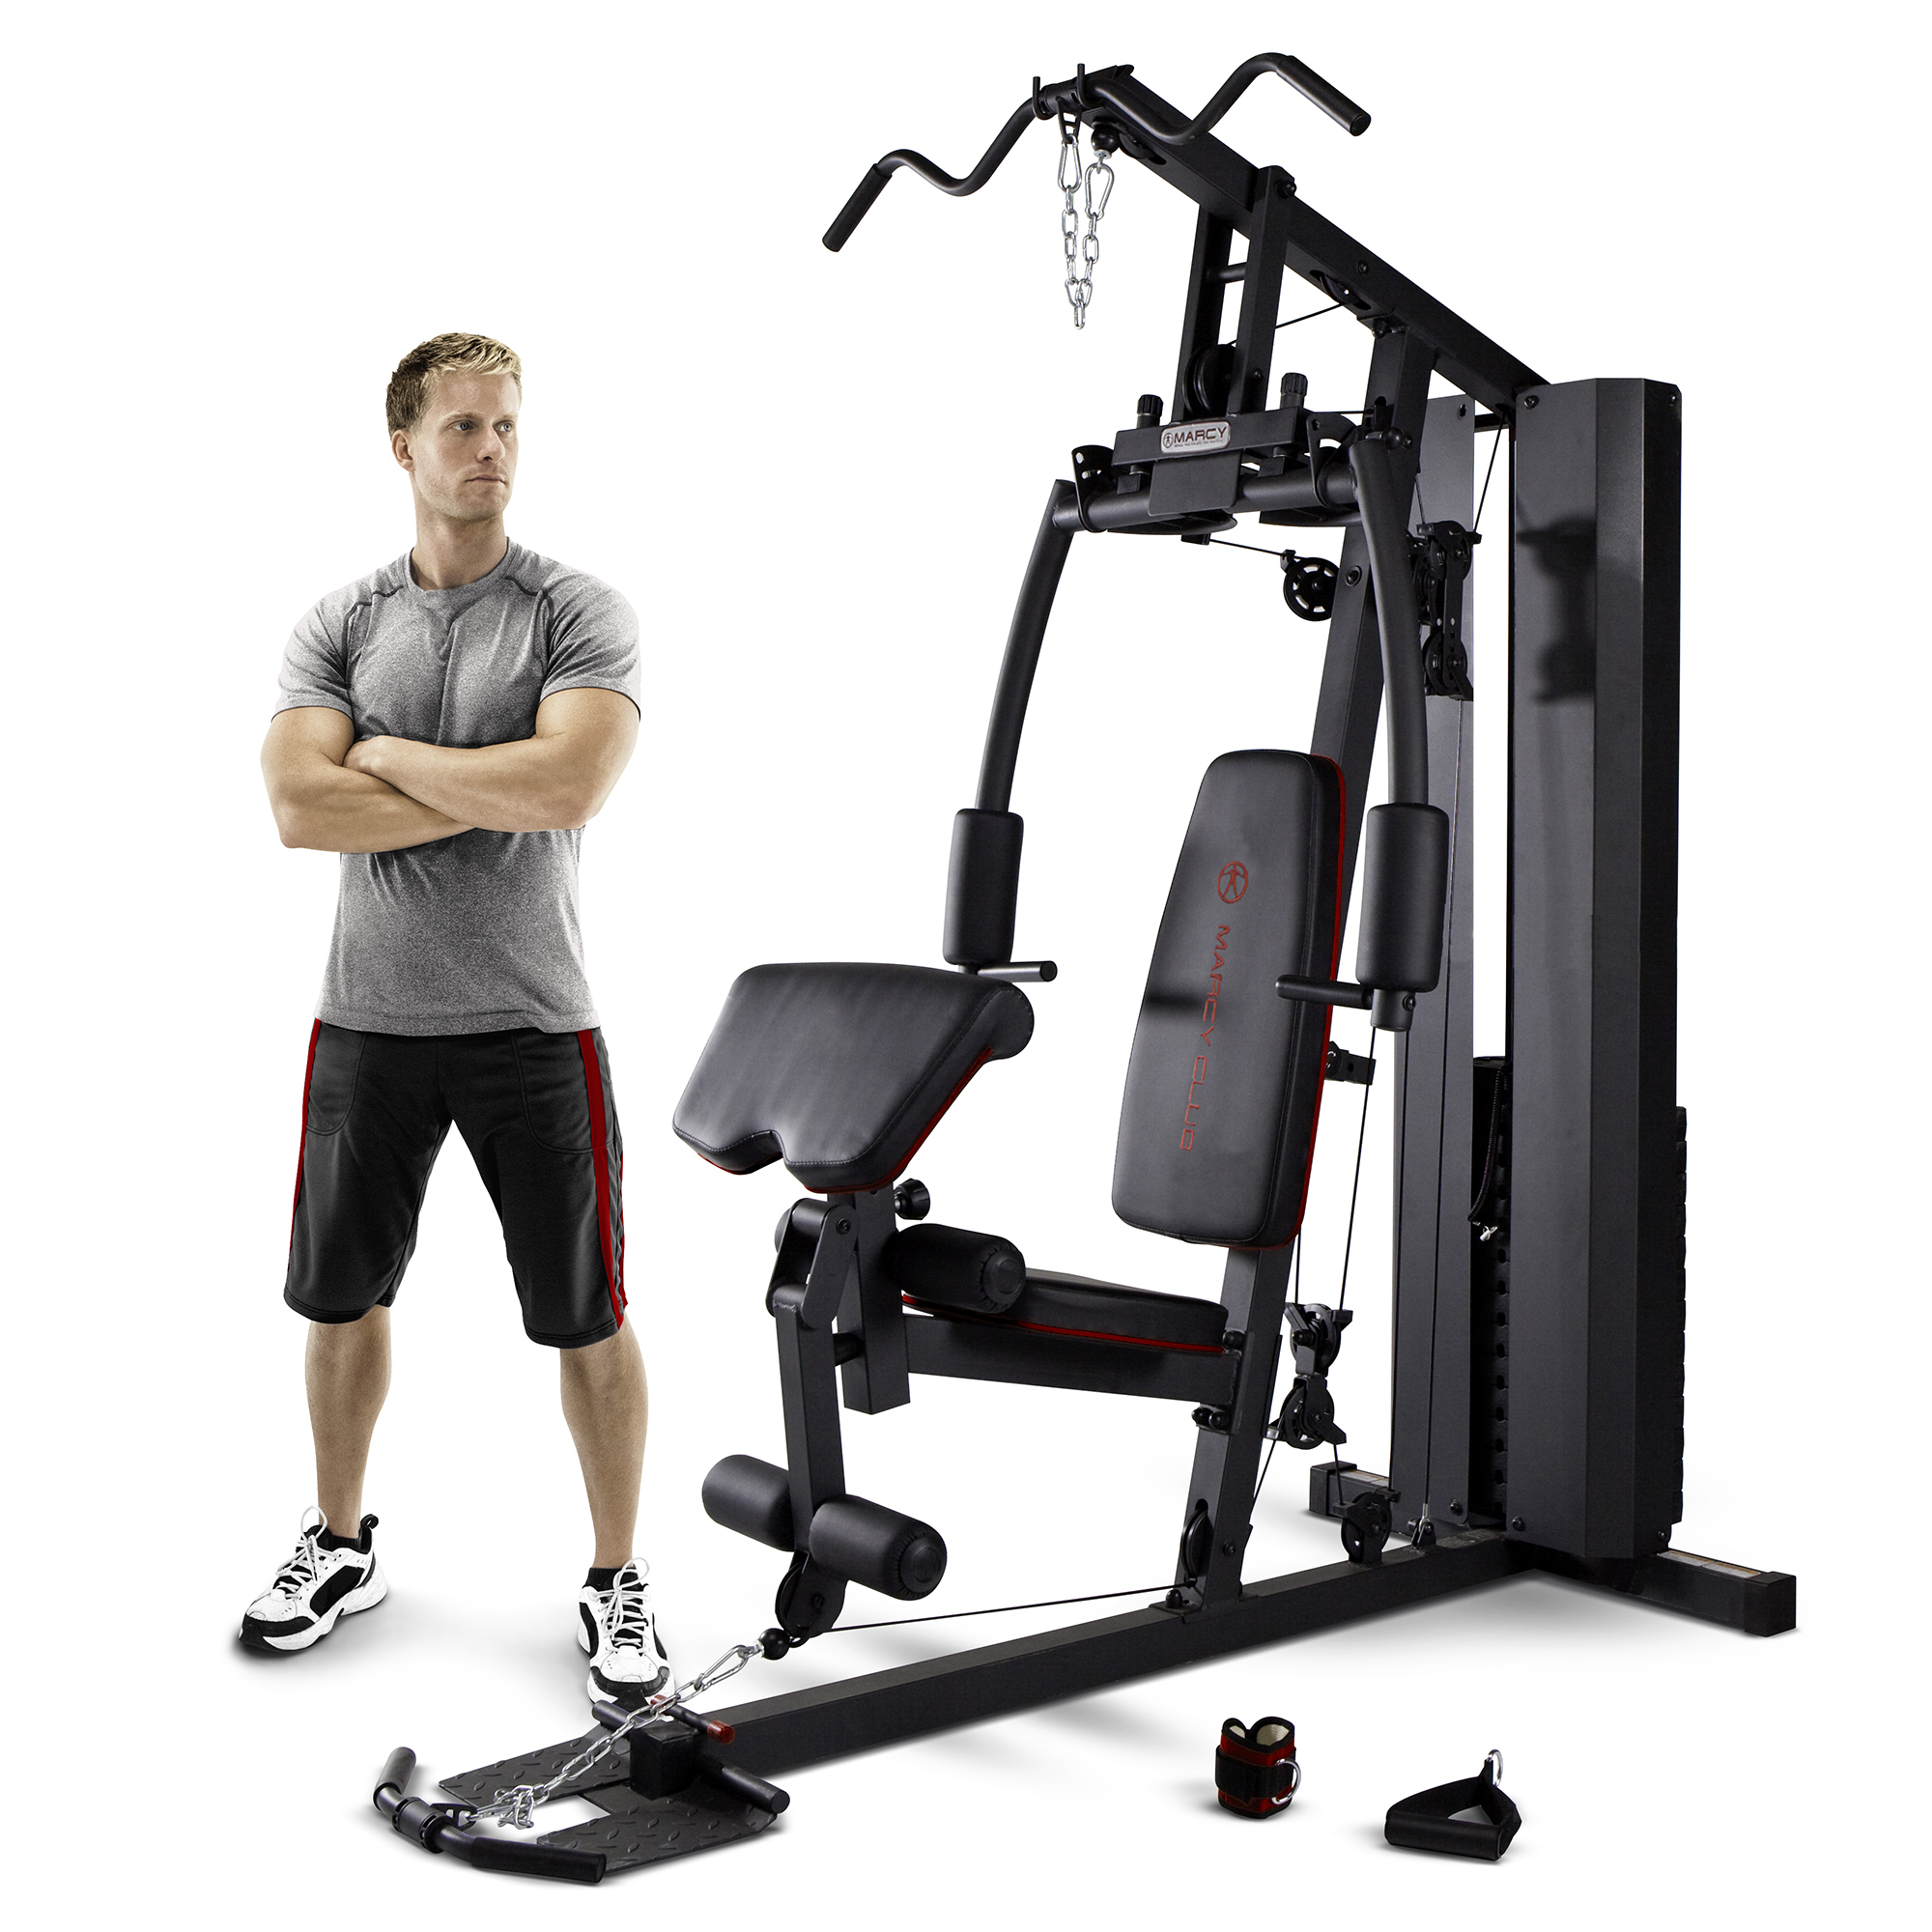 200lb Home Gym MKM-81010